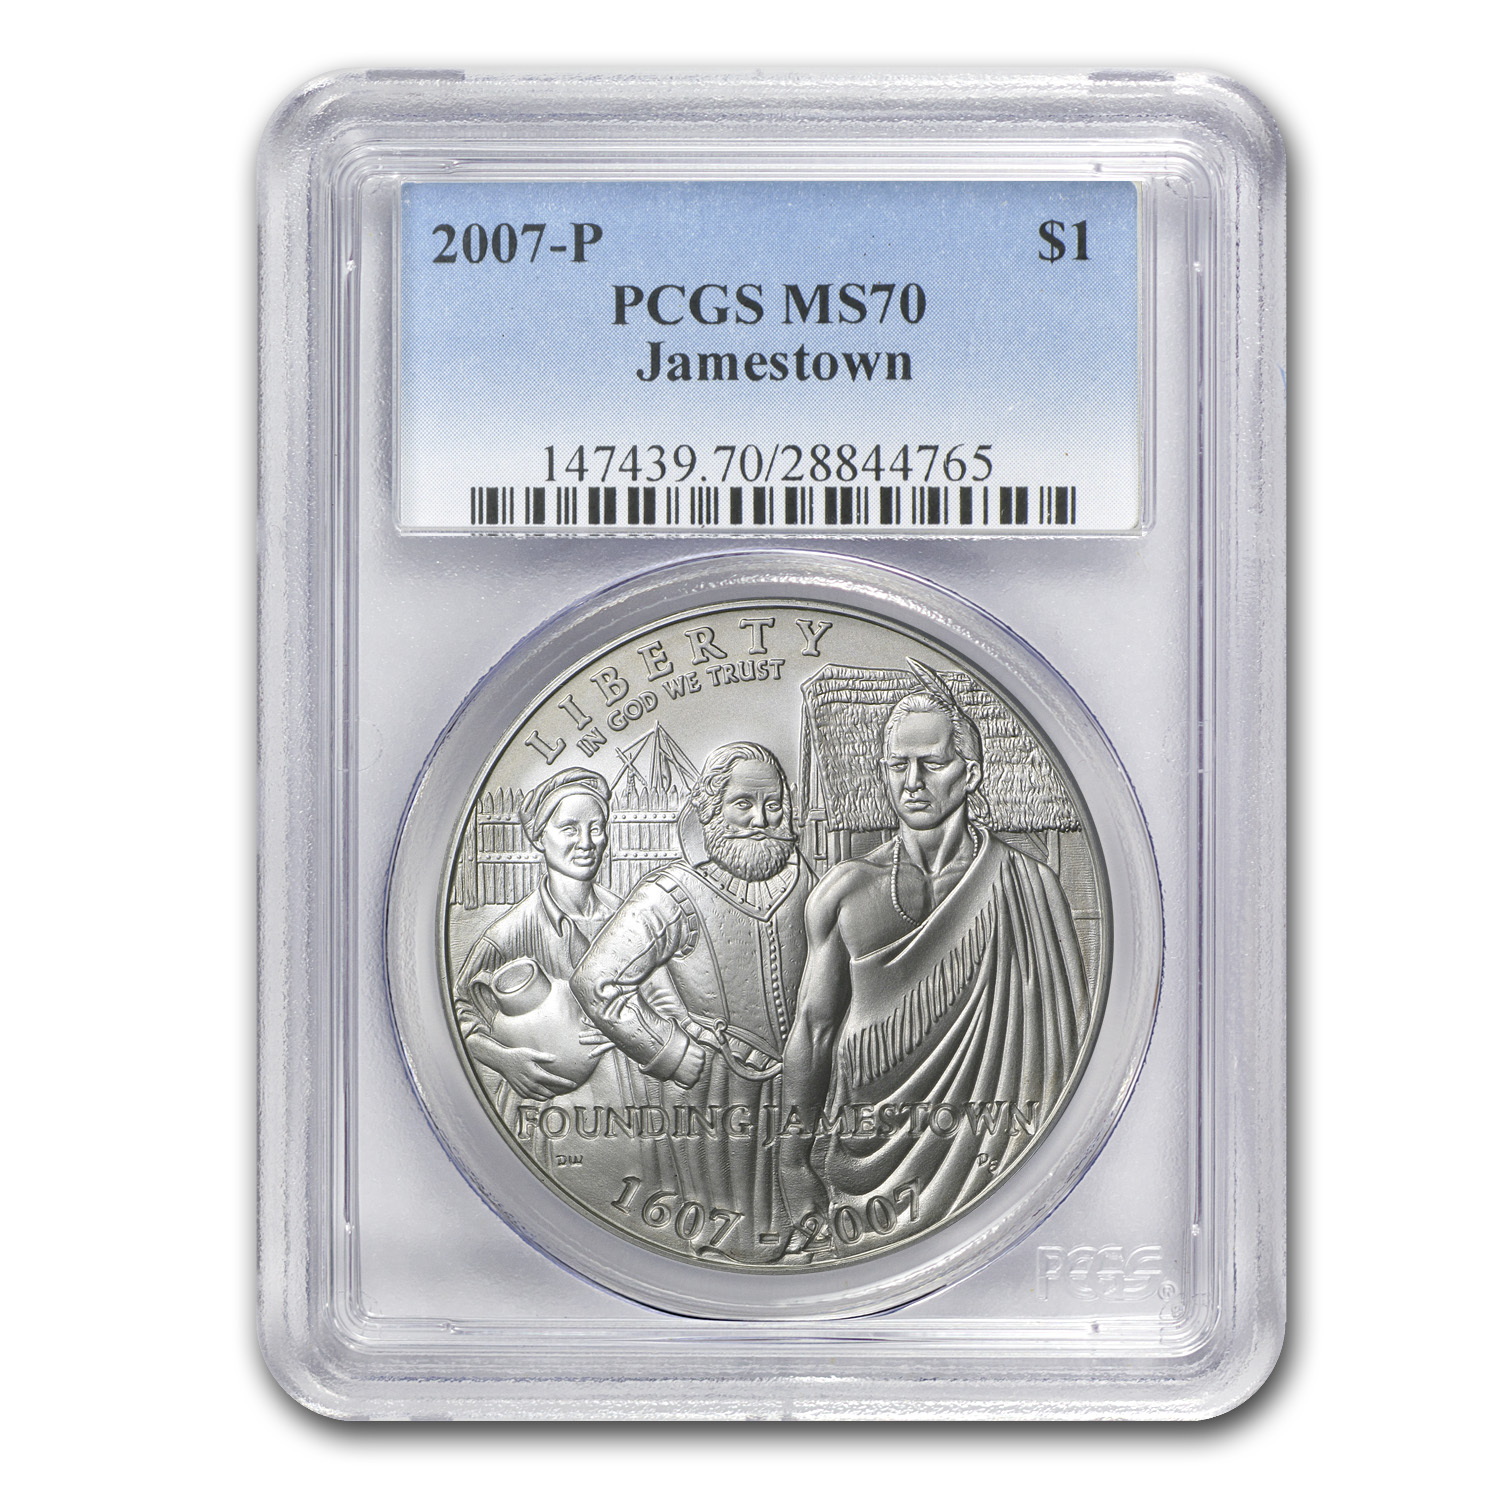 2007-P Jamestown 400th Anniv $1 Silver Commemorative MS-70 PCGS